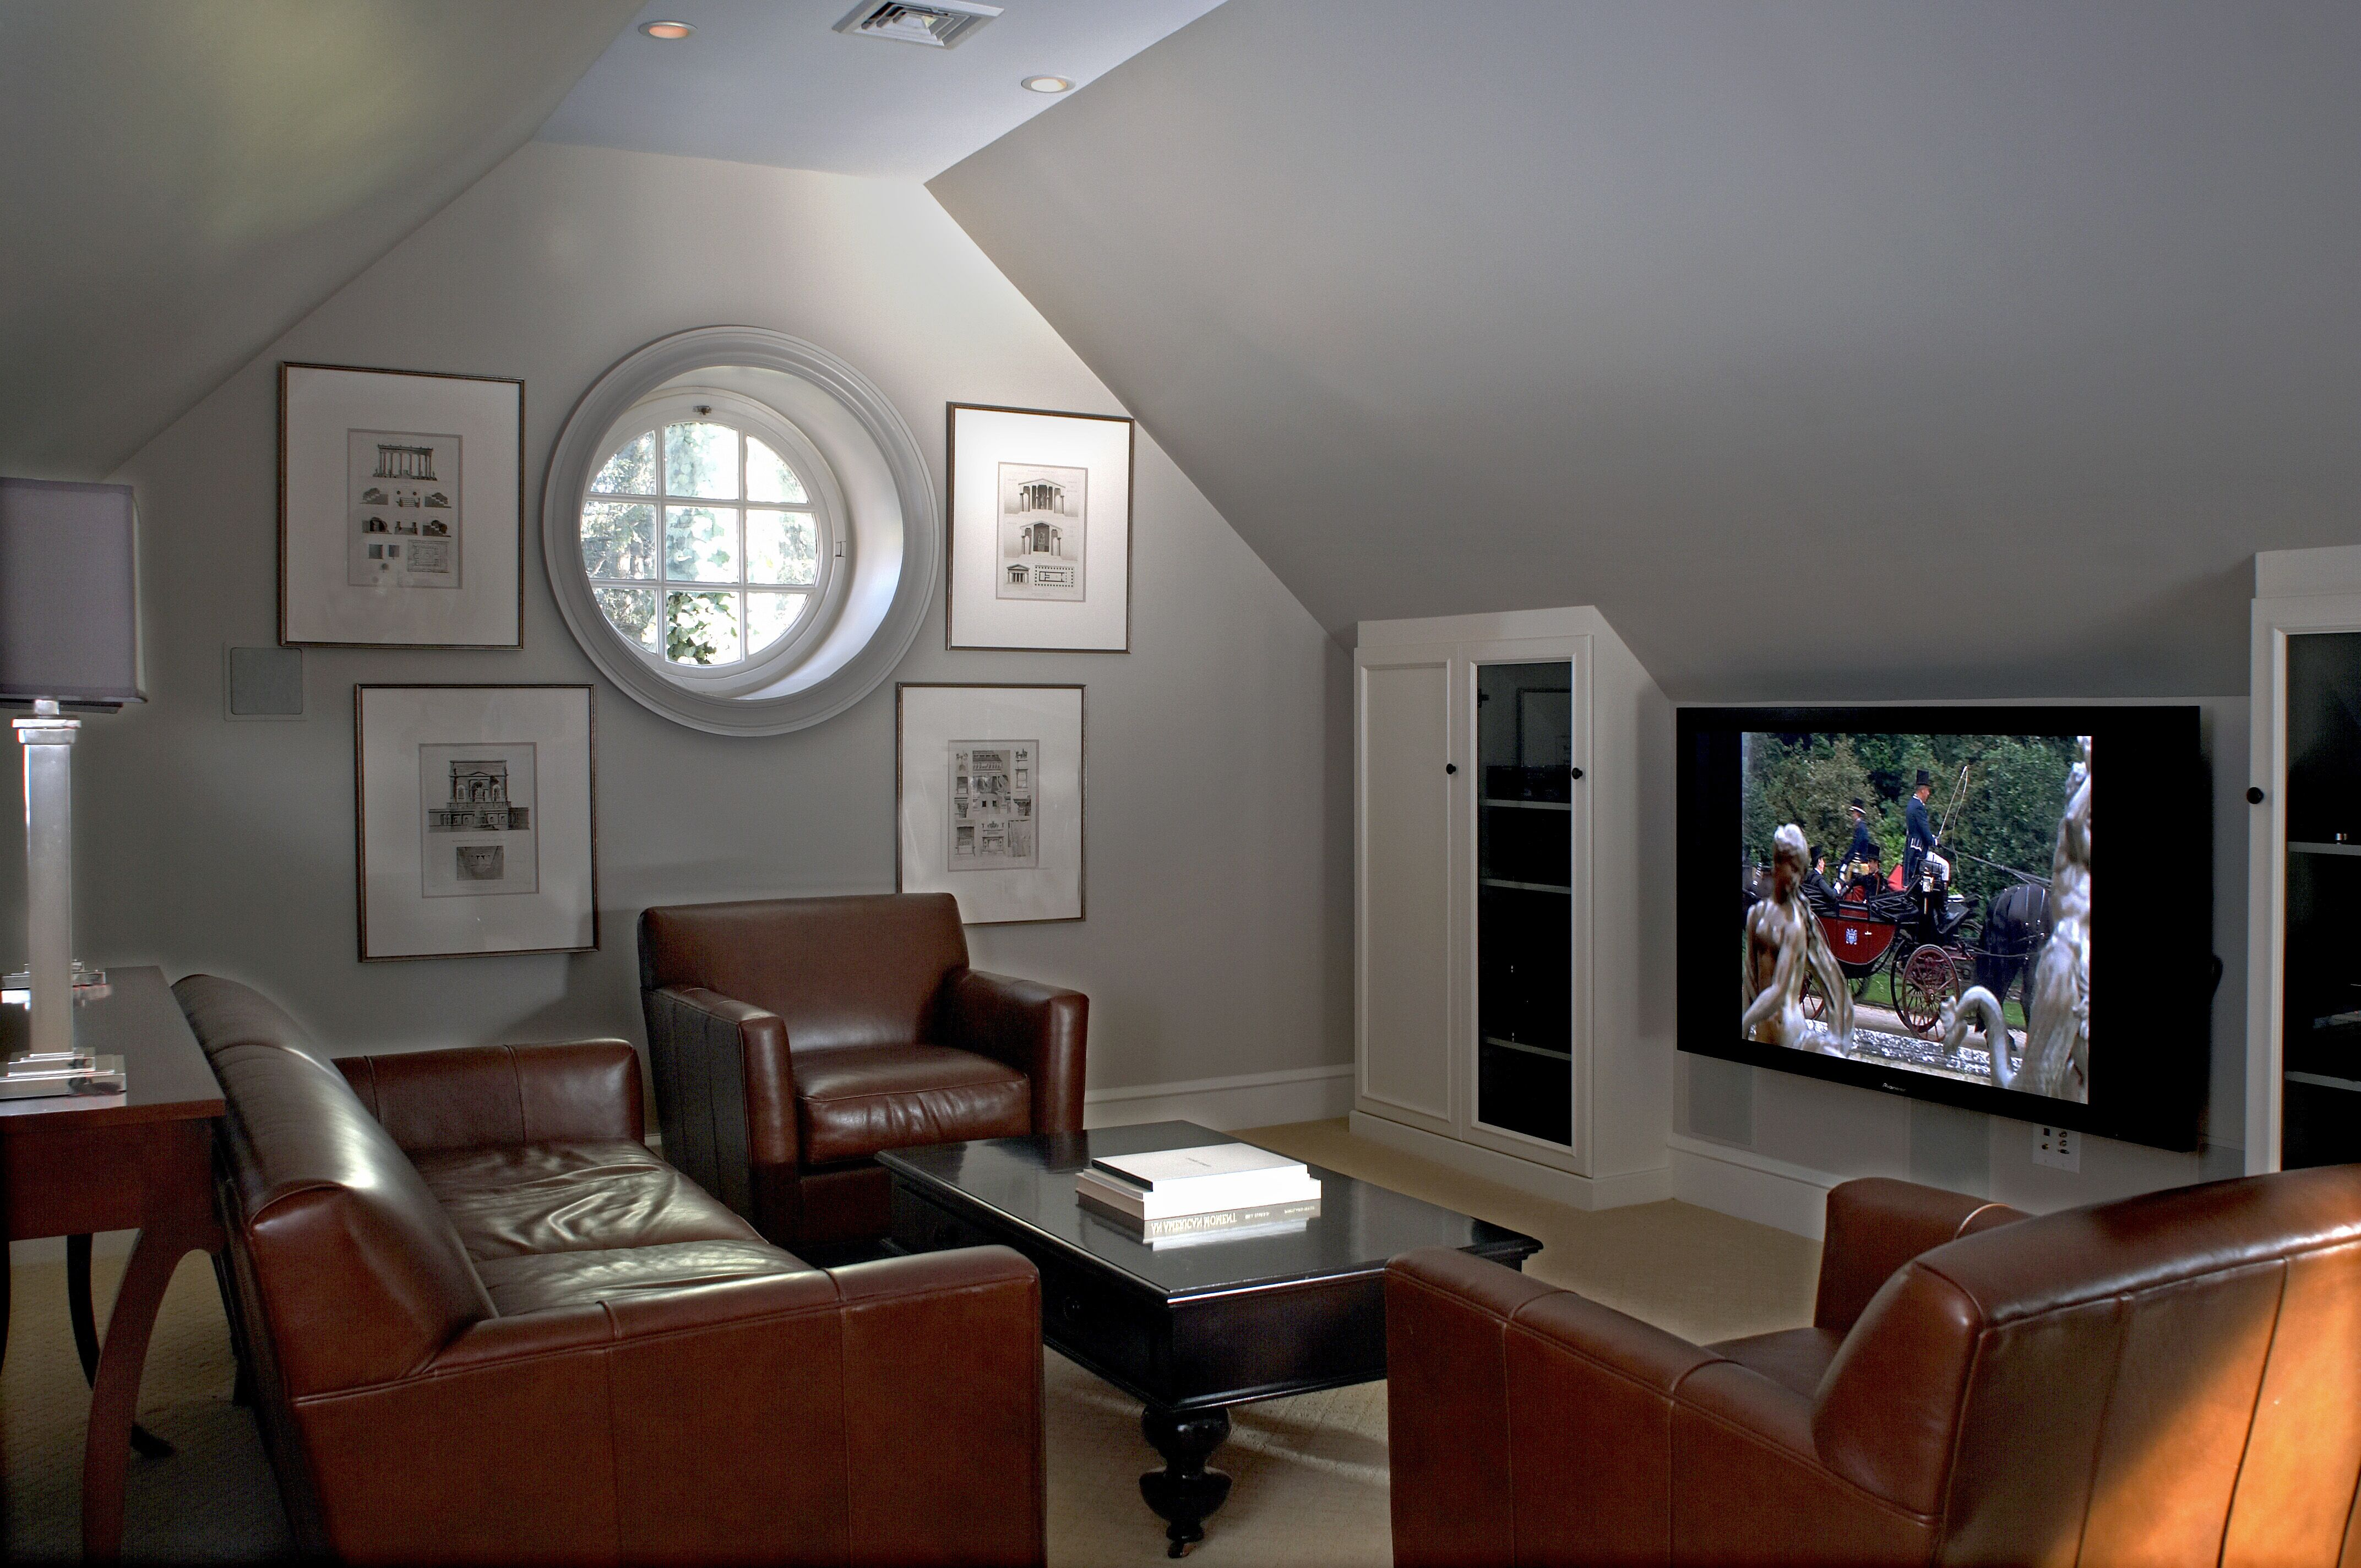 Kick Off The Nfl Season With A Man Cave Attic Rooms Home Room